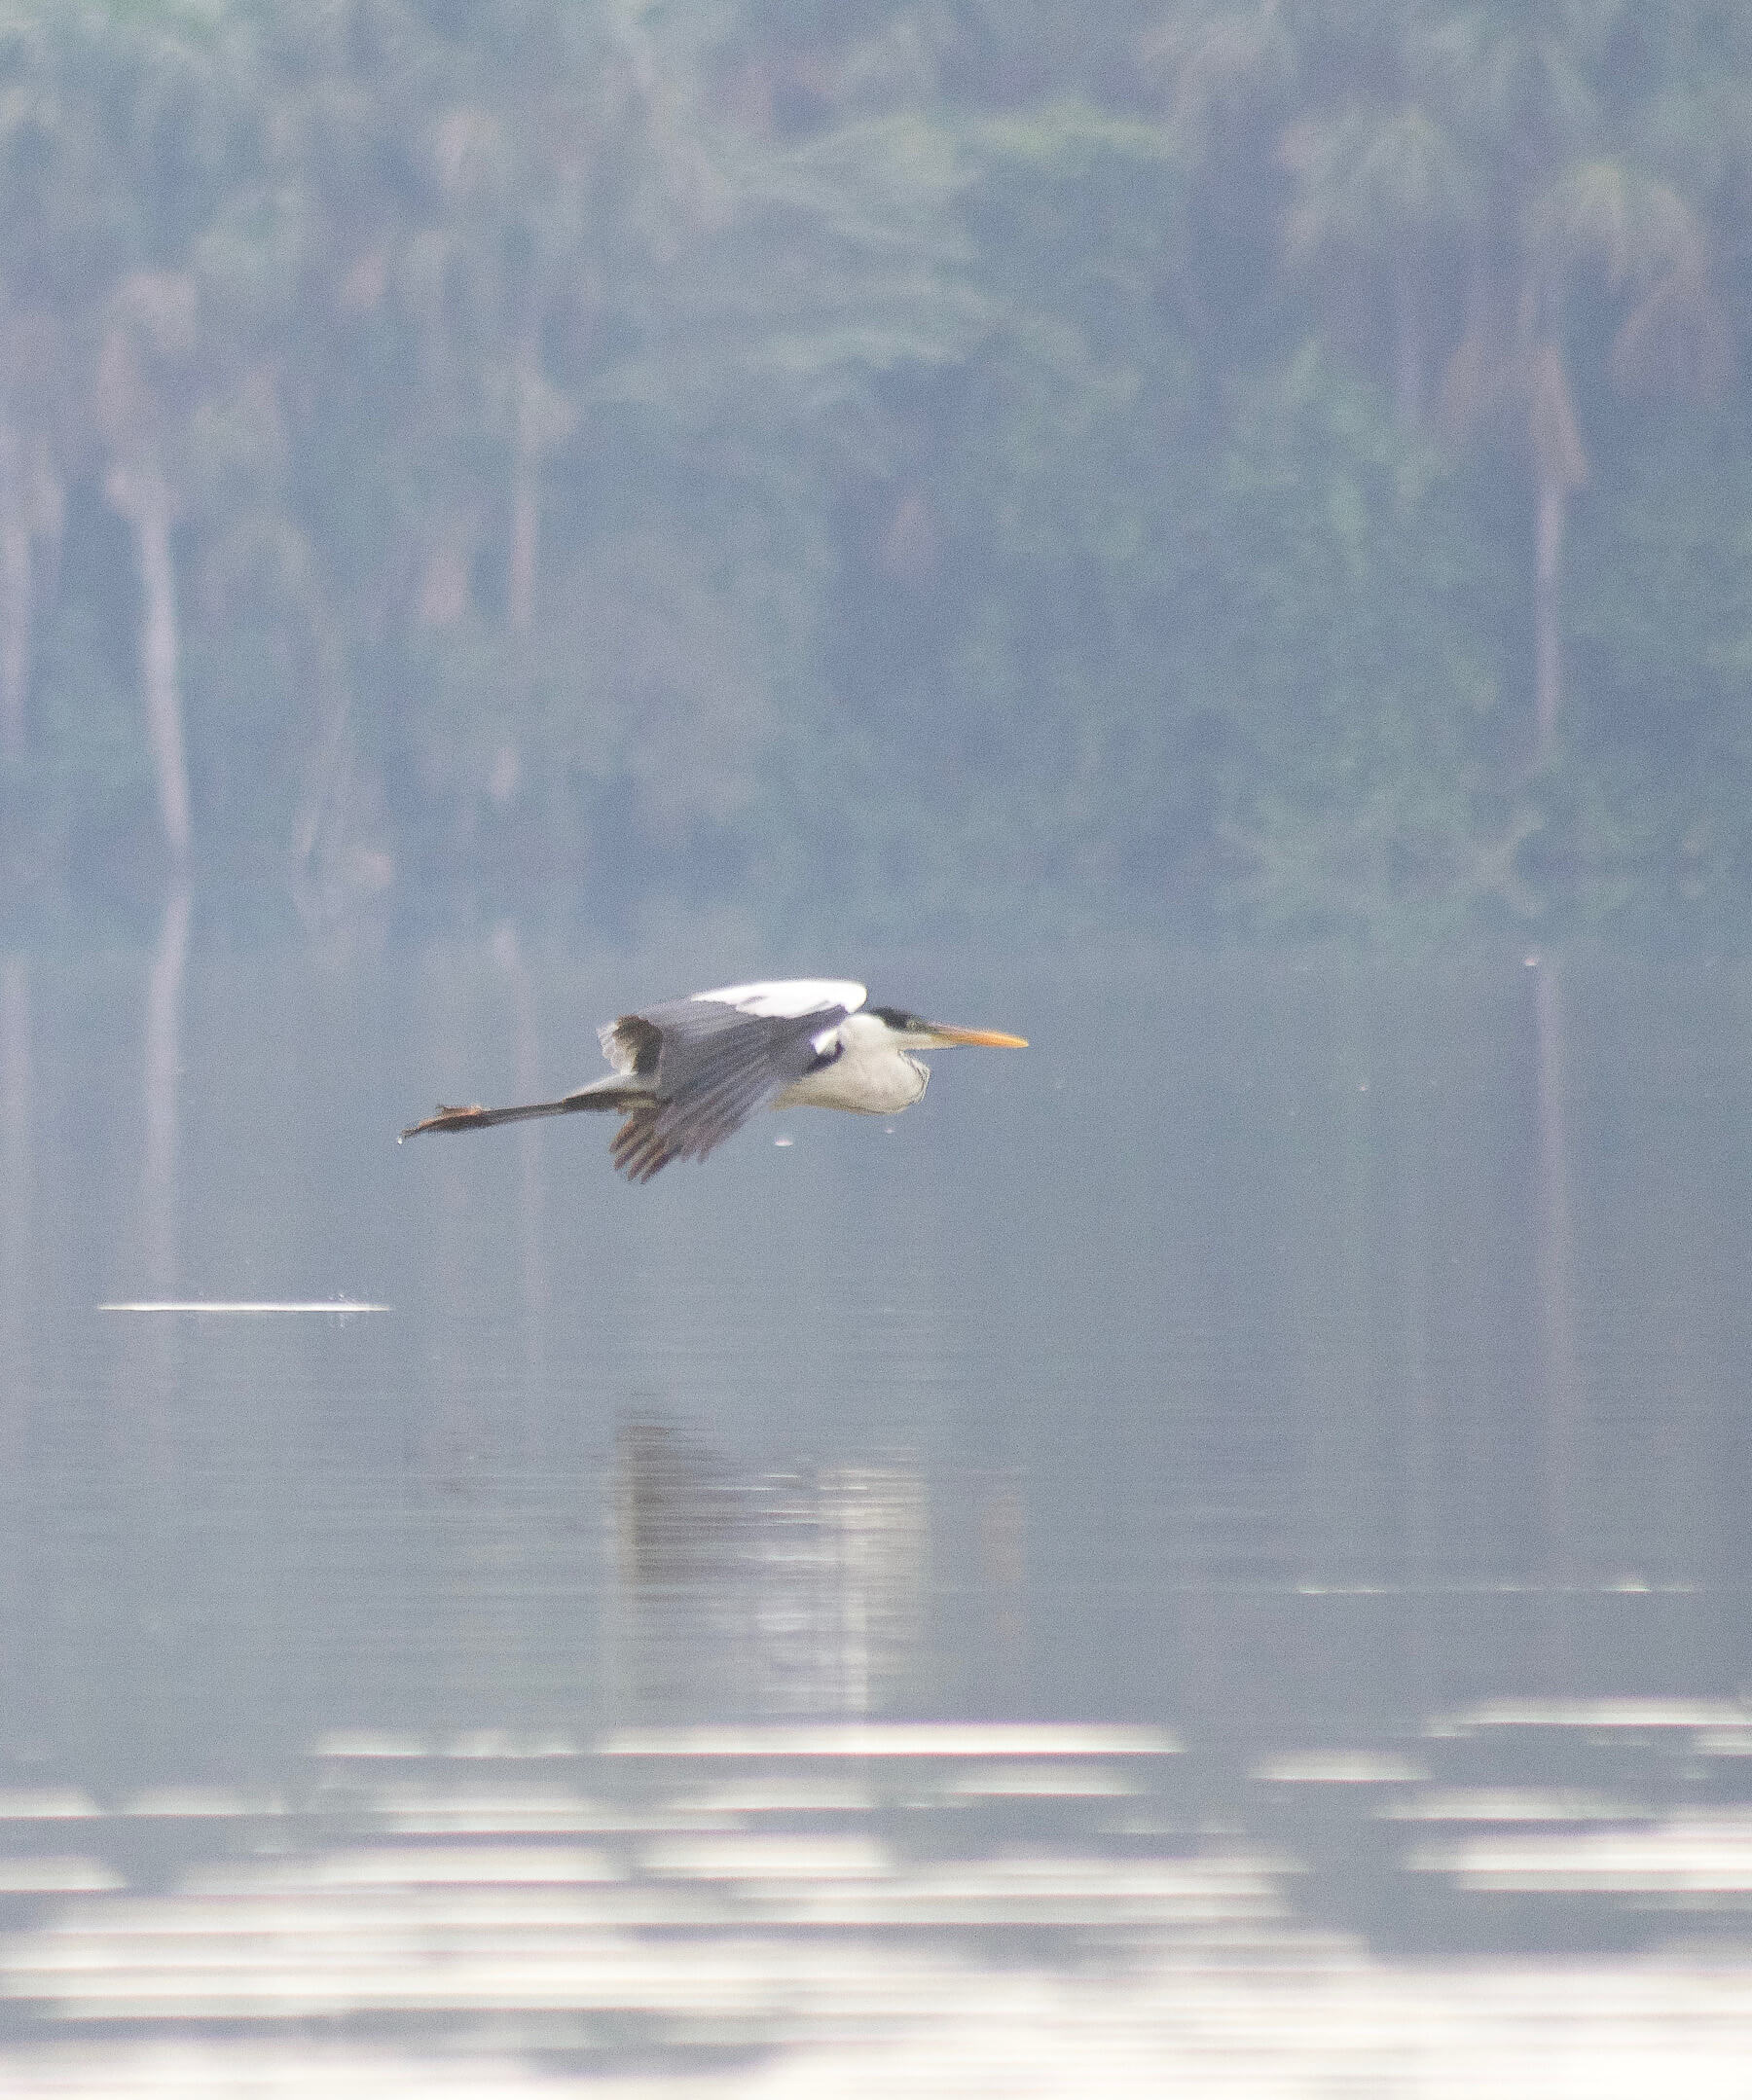 A herron flying low above the water of Lake Sandoval